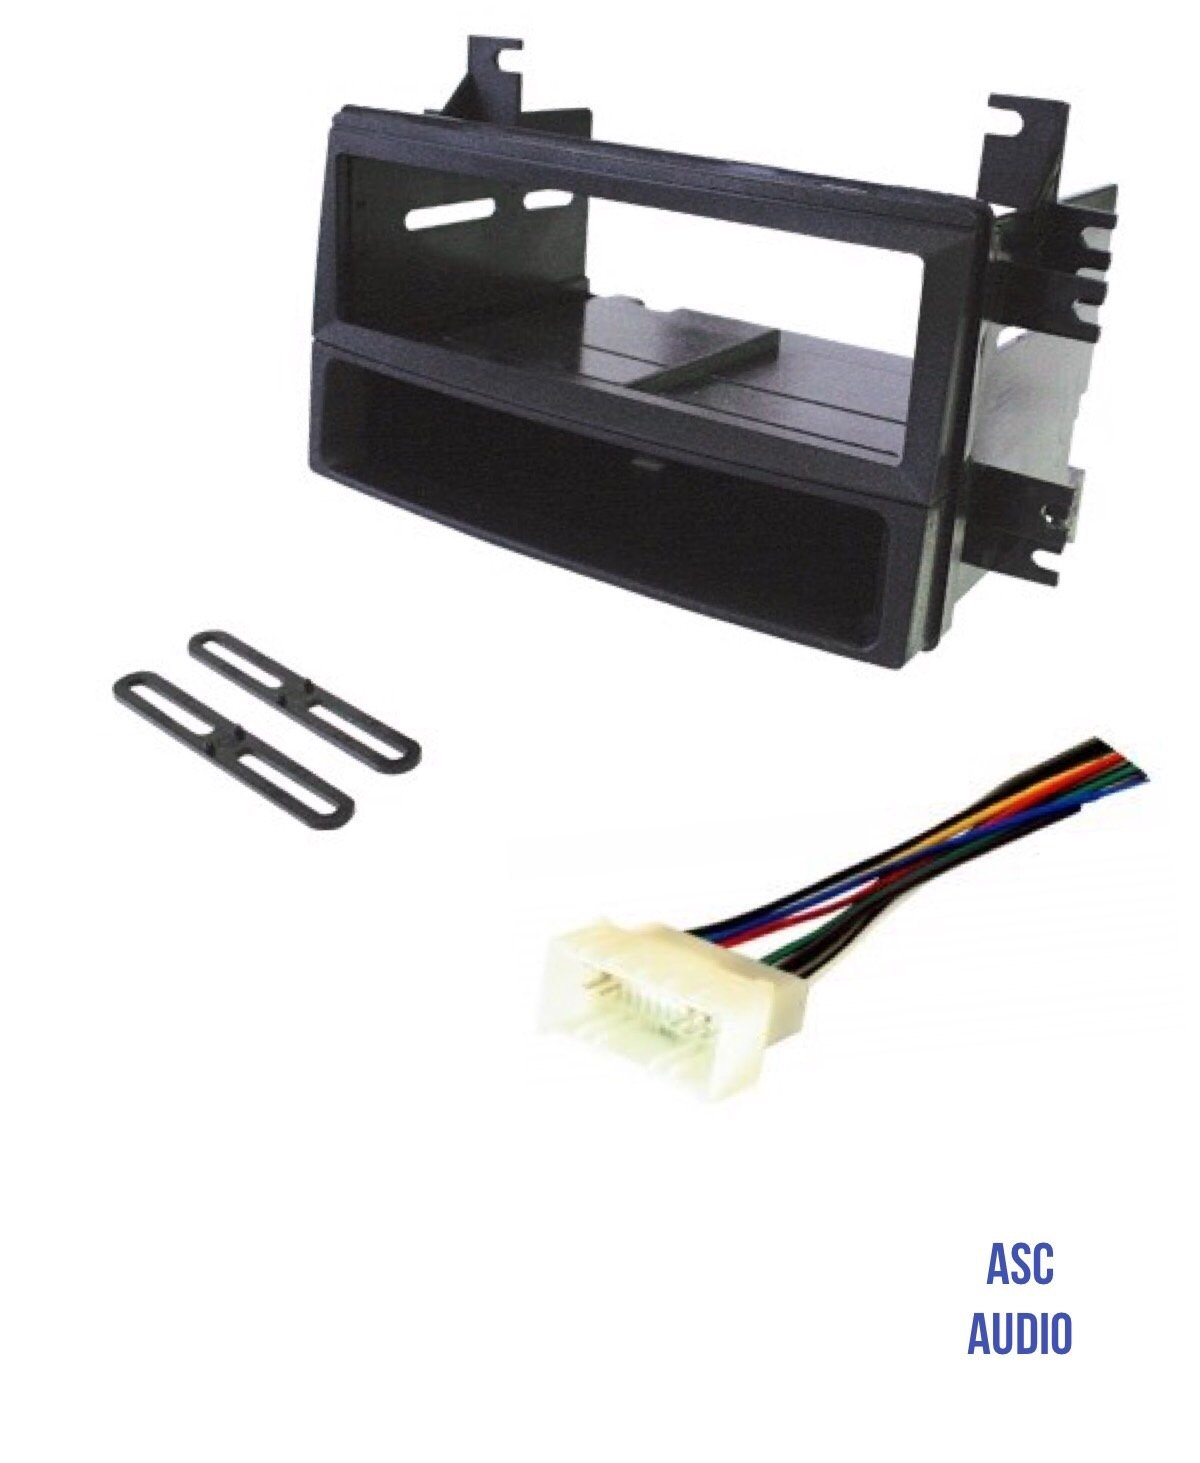 Amazon.com: ASC Car Stereo Install Dash Kit and Wire Harness for installing  an Aftermarket Single Din Radio for some Hyundai Kia Vehicles - Compatible  ...